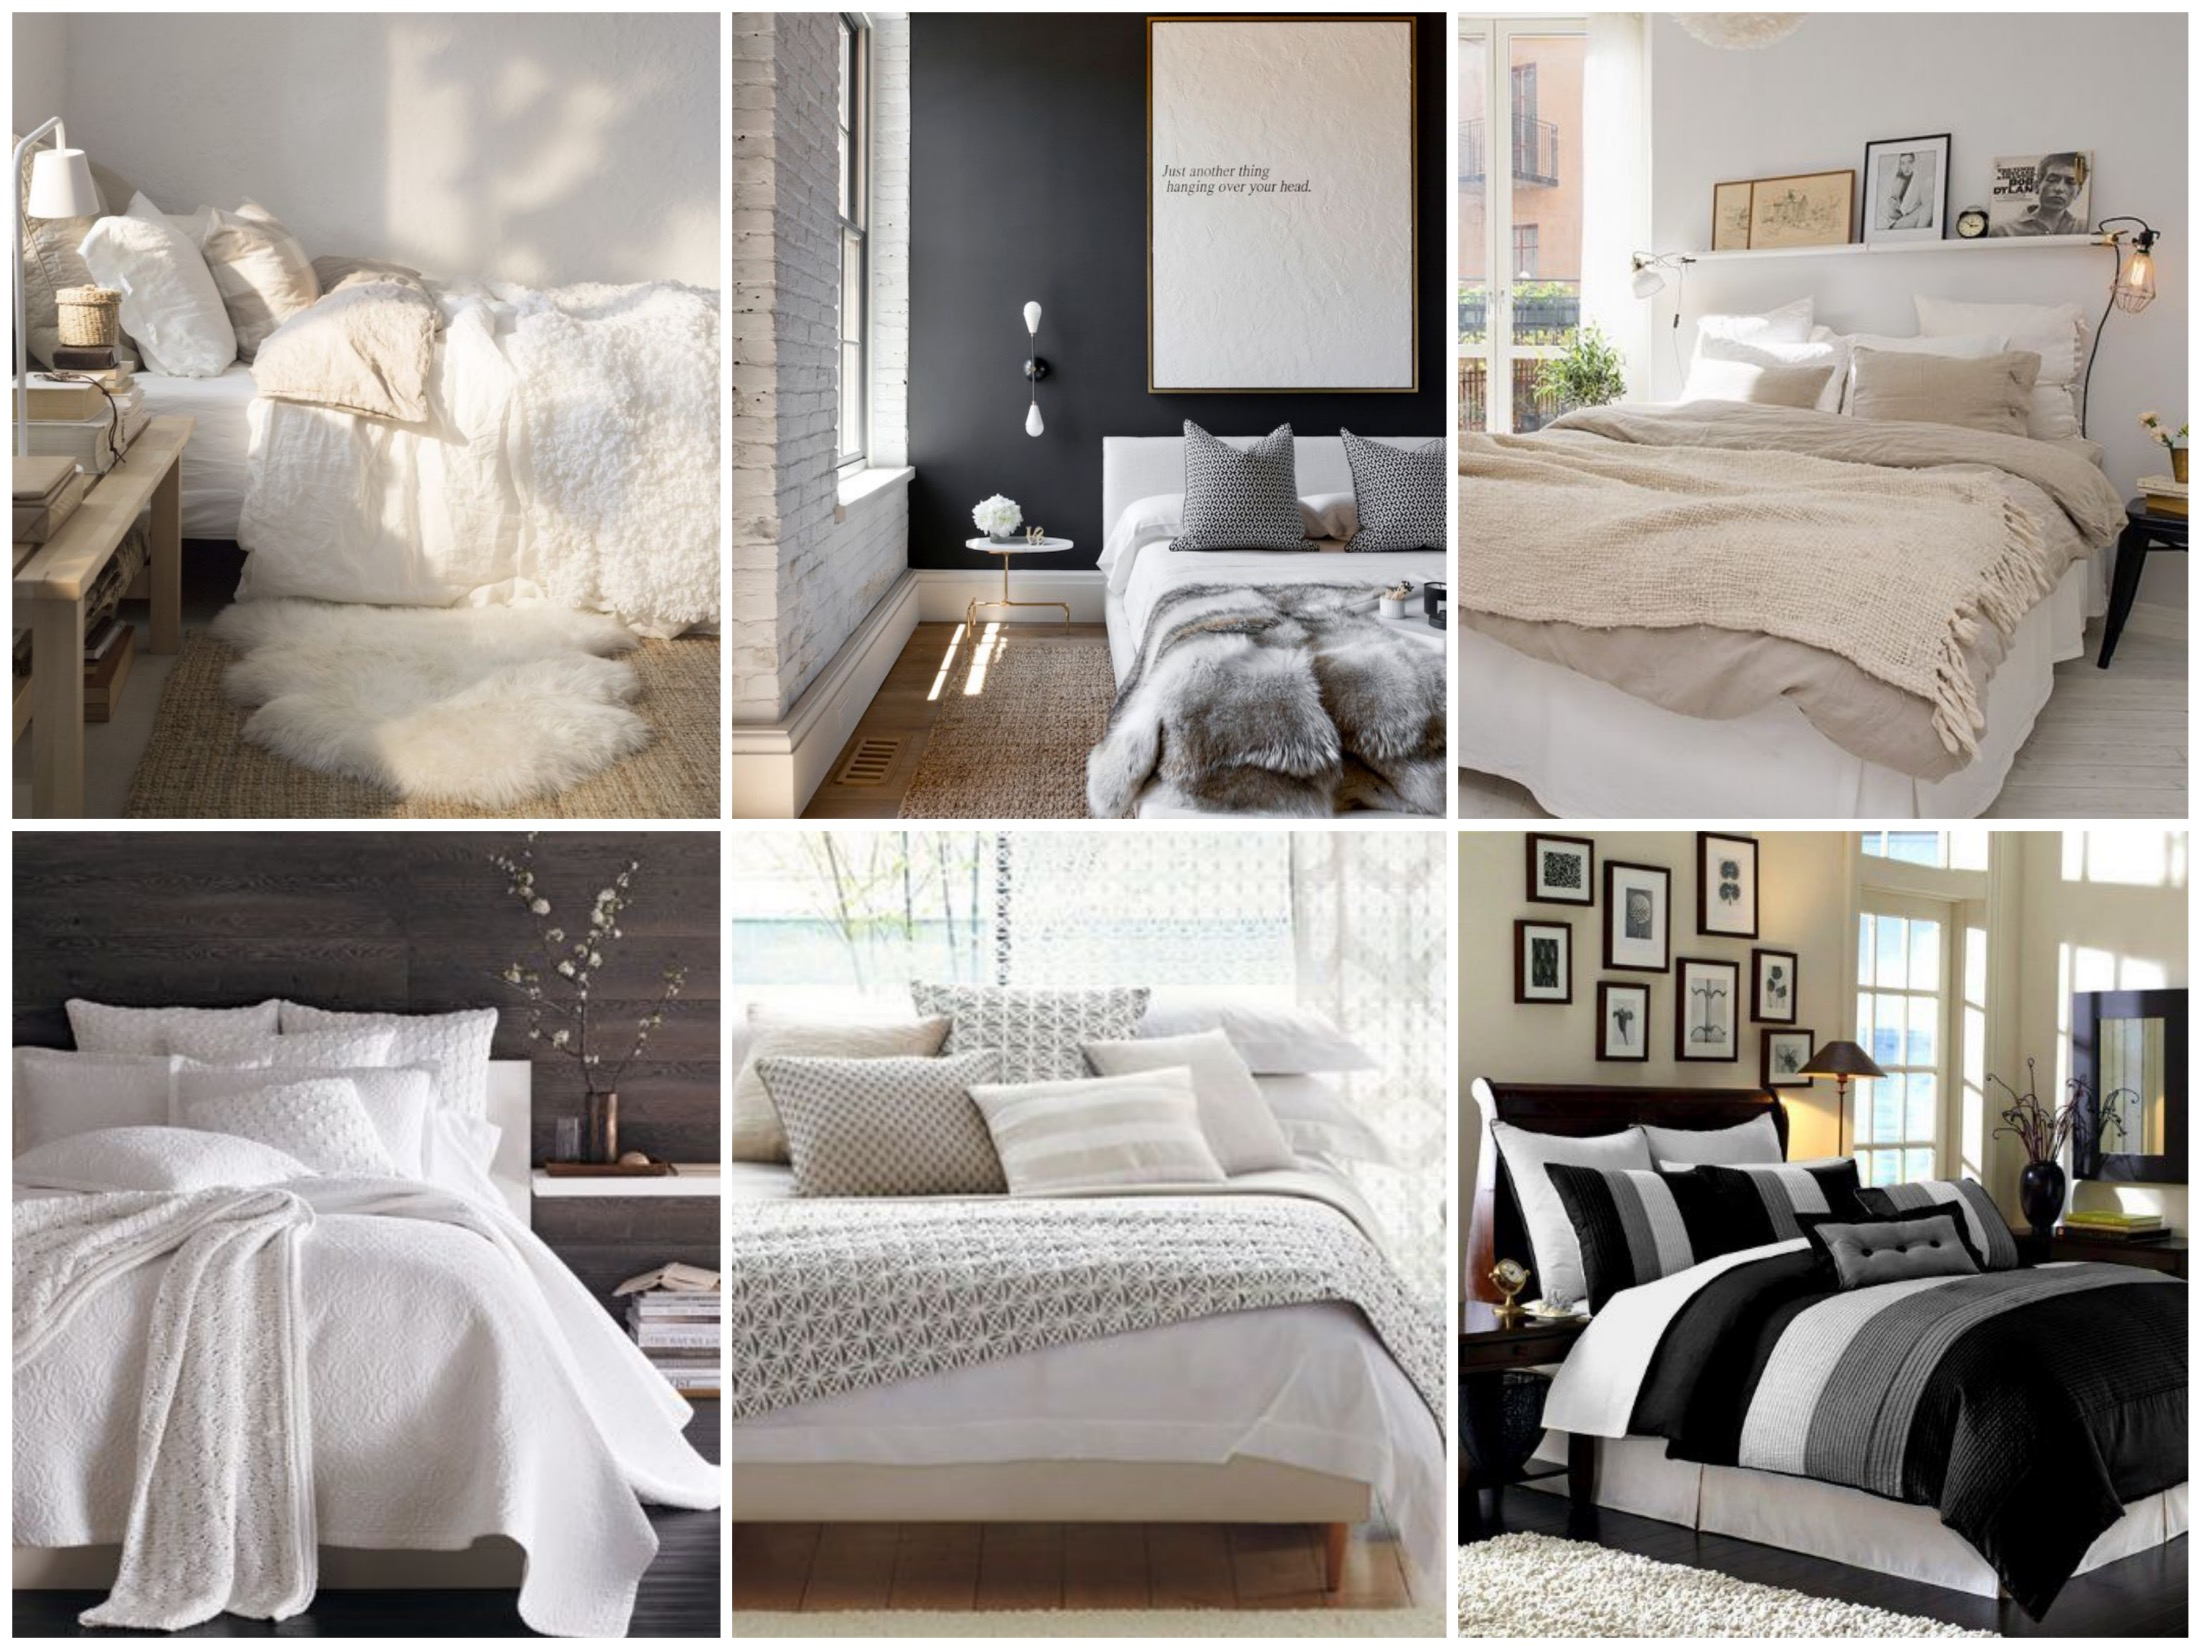 inspirations d co de jolies parures de lit zara home. Black Bedroom Furniture Sets. Home Design Ideas